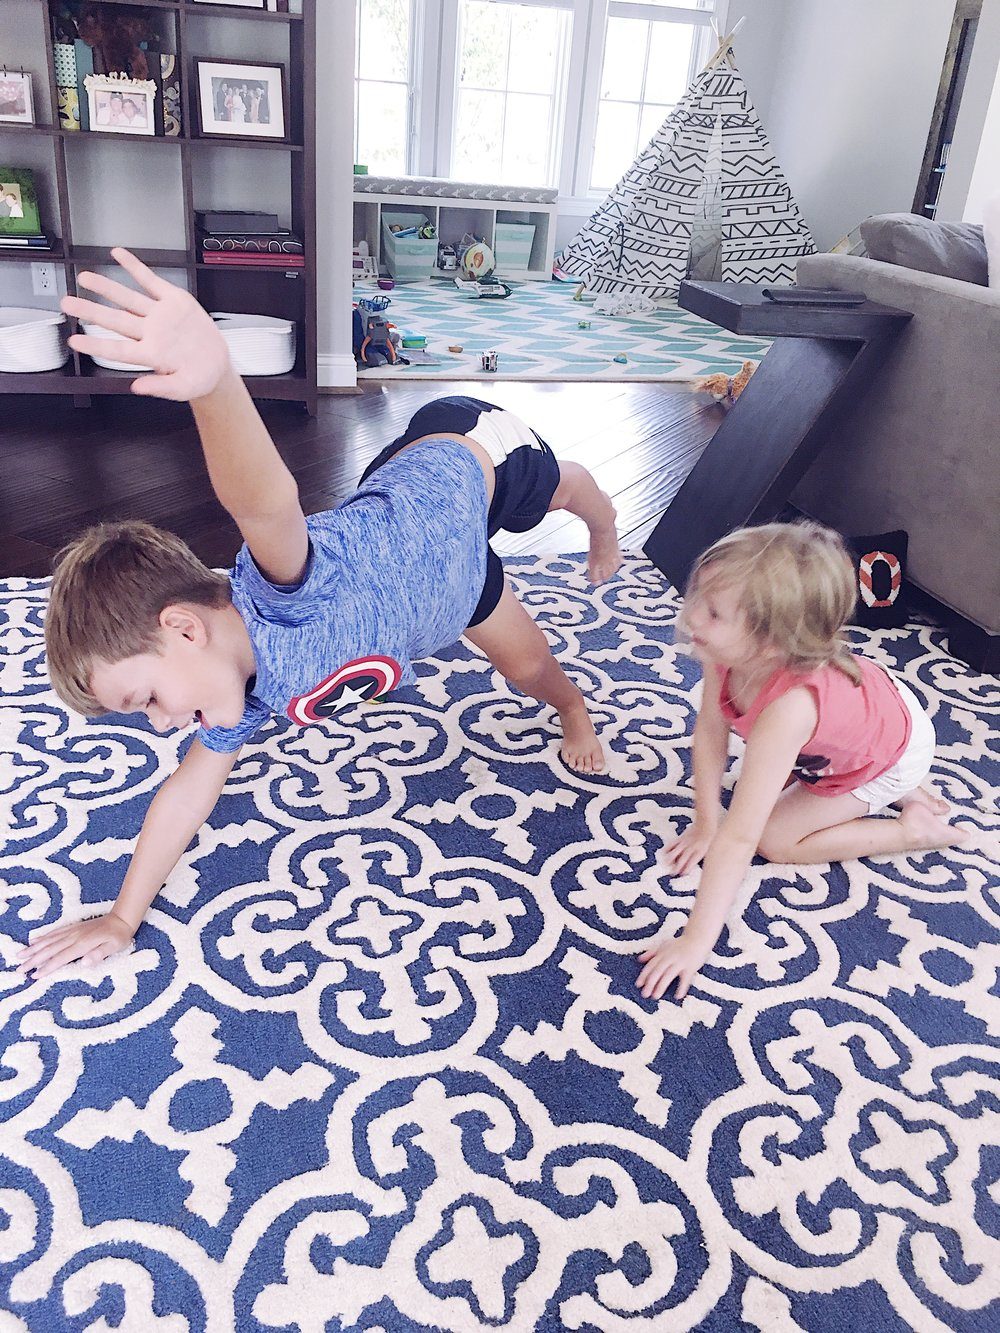 Sunday is for yoga with my buddies